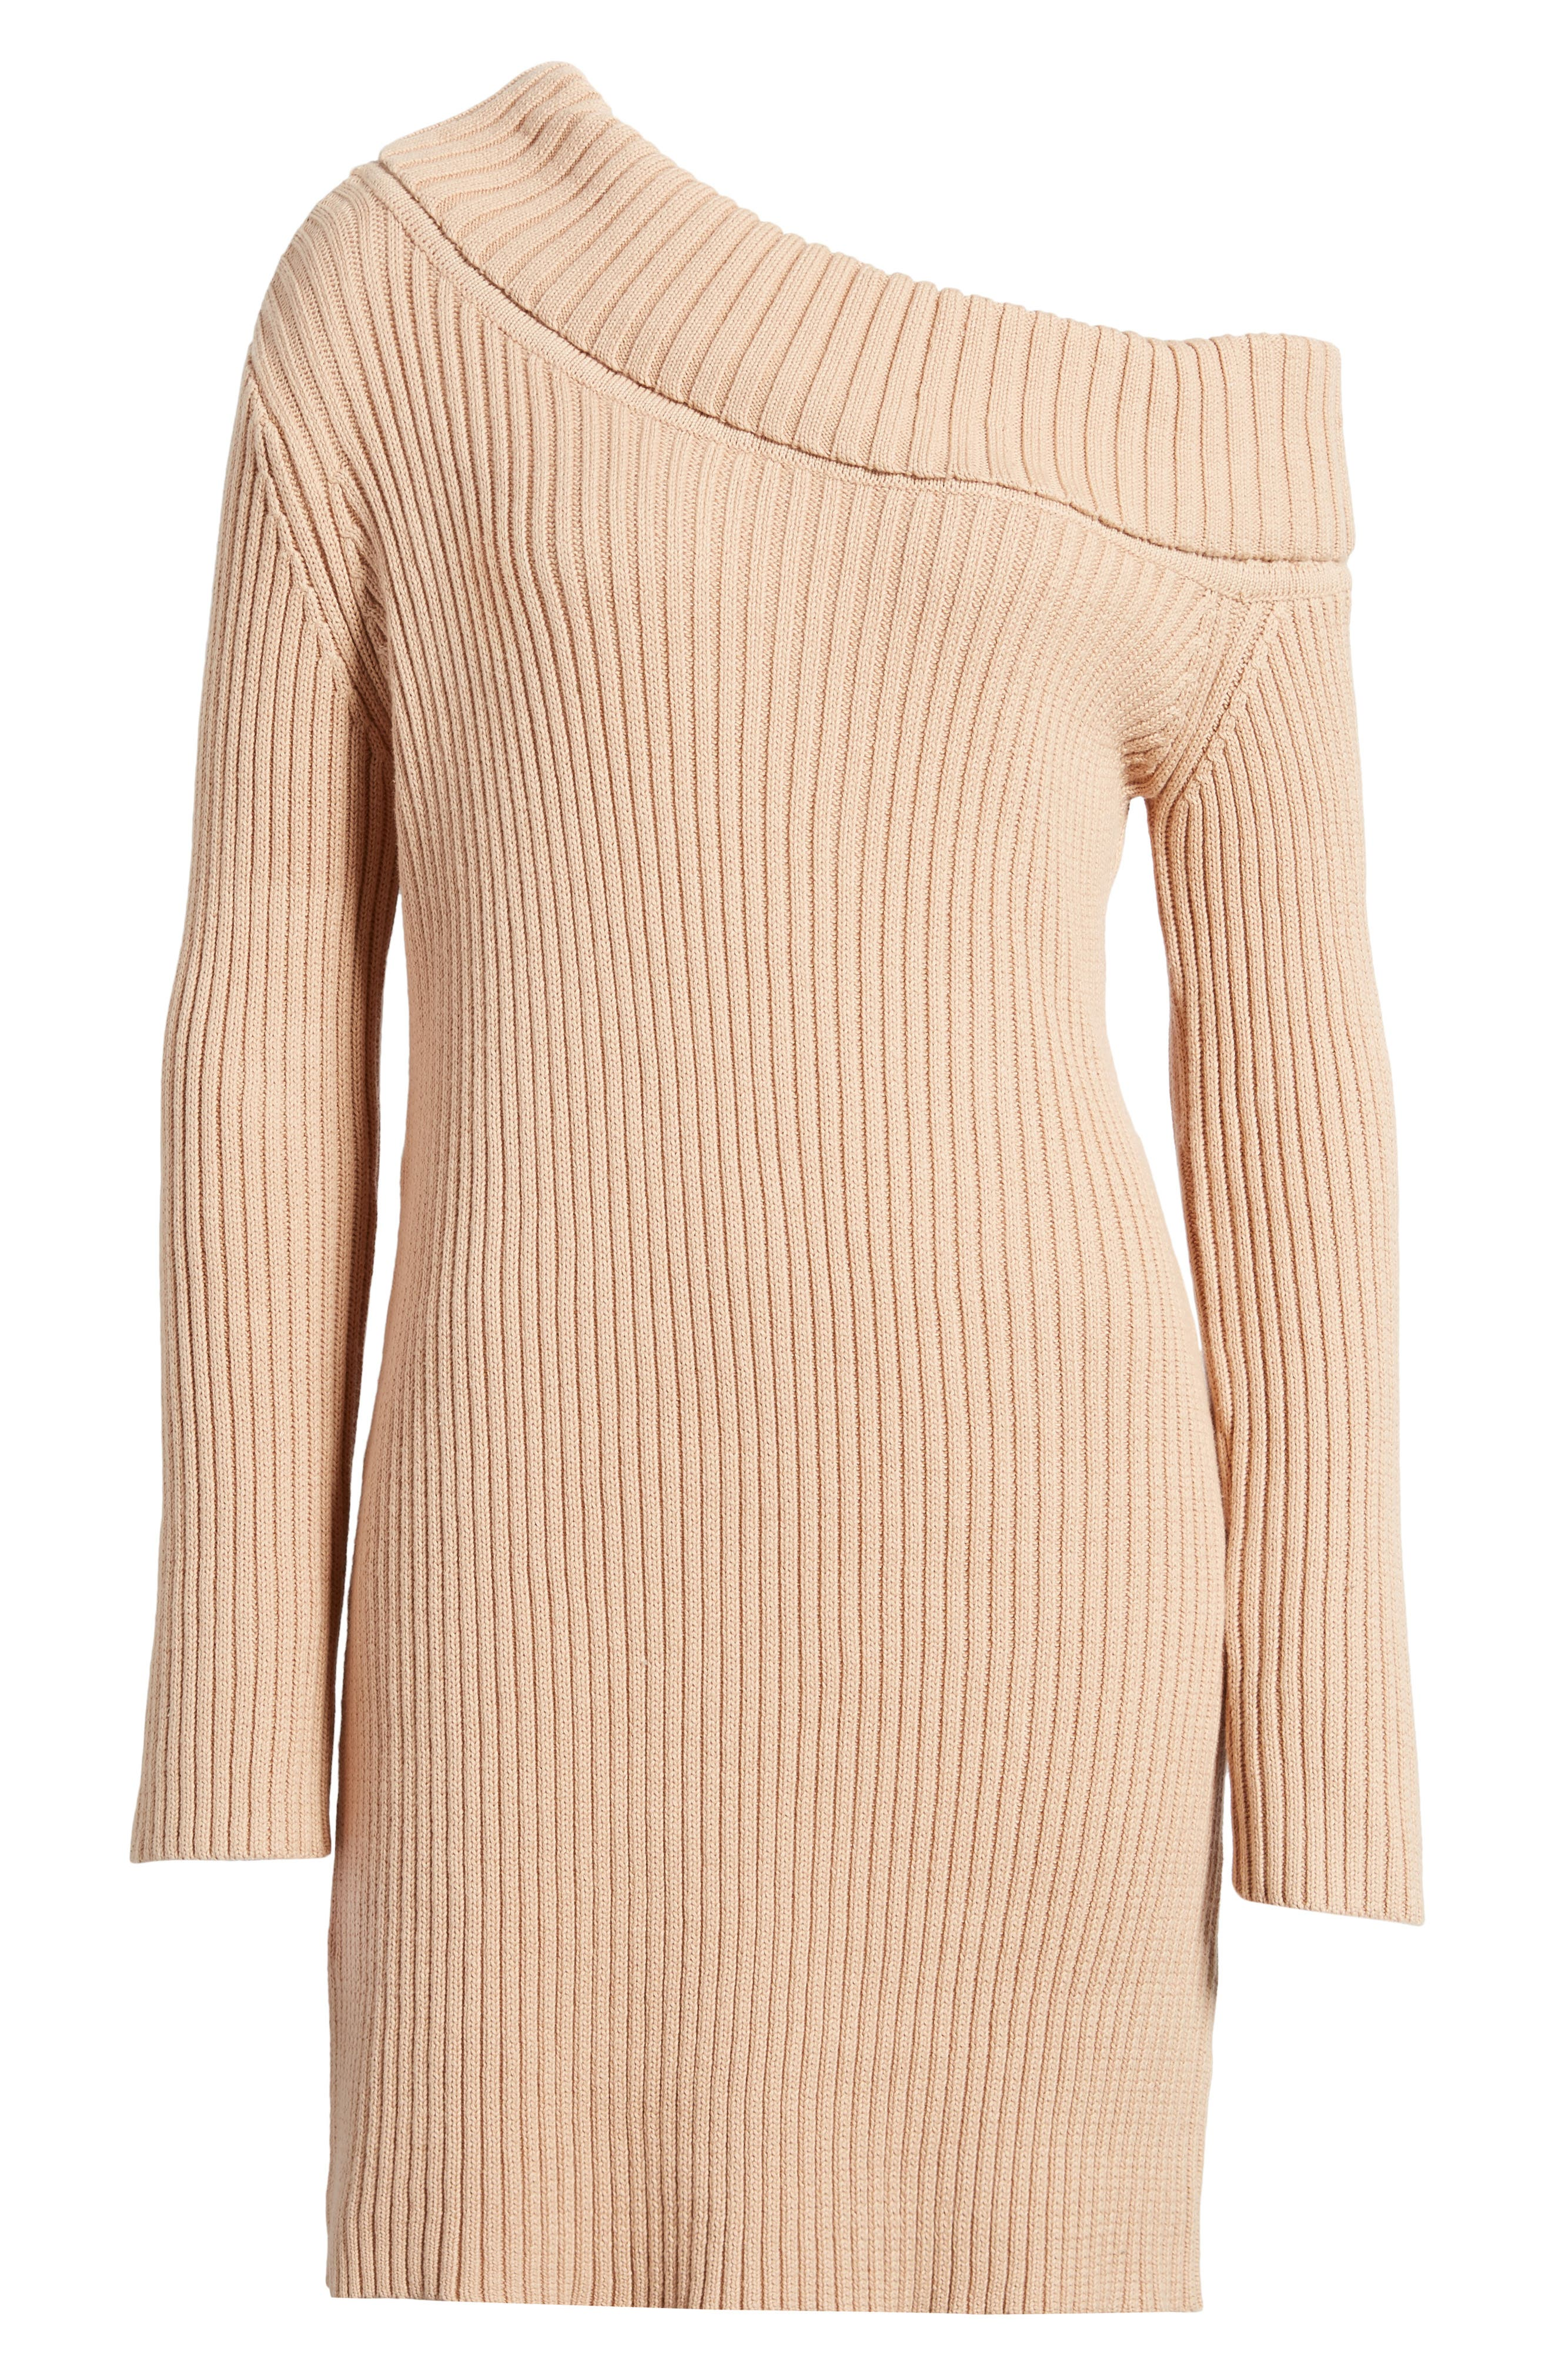 Like a Melody Off the Shoulder Dress,                             Alternate thumbnail 6, color,                             Dusty Pink